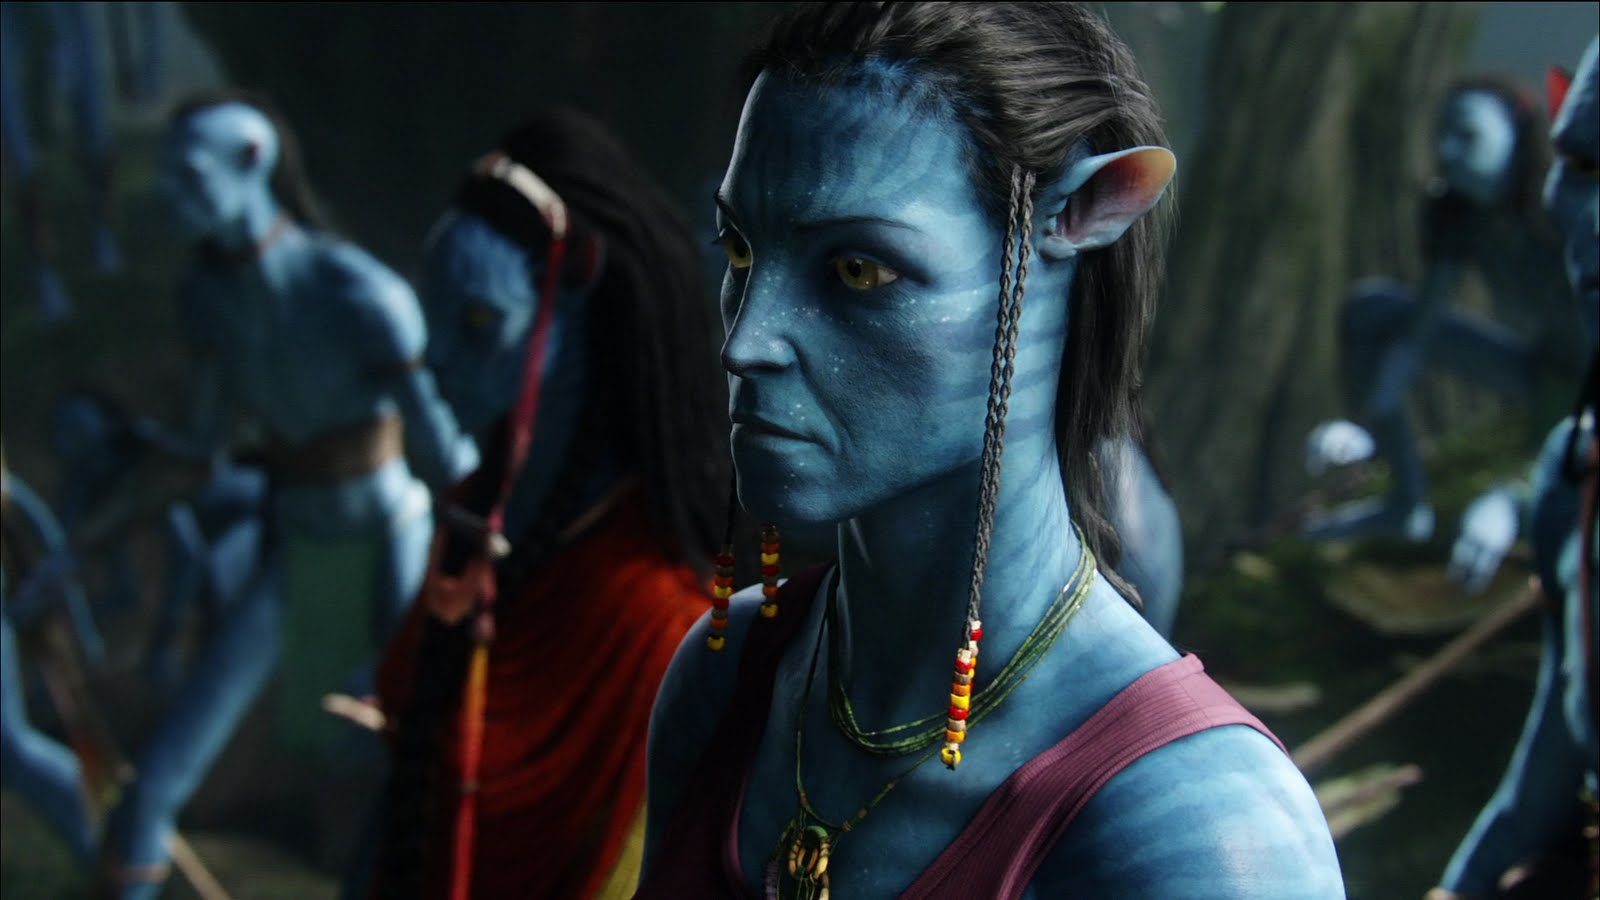 Free Hd Movie Download Point Avatar 2009 Free Hd Movie: Hot Movies. Free Download